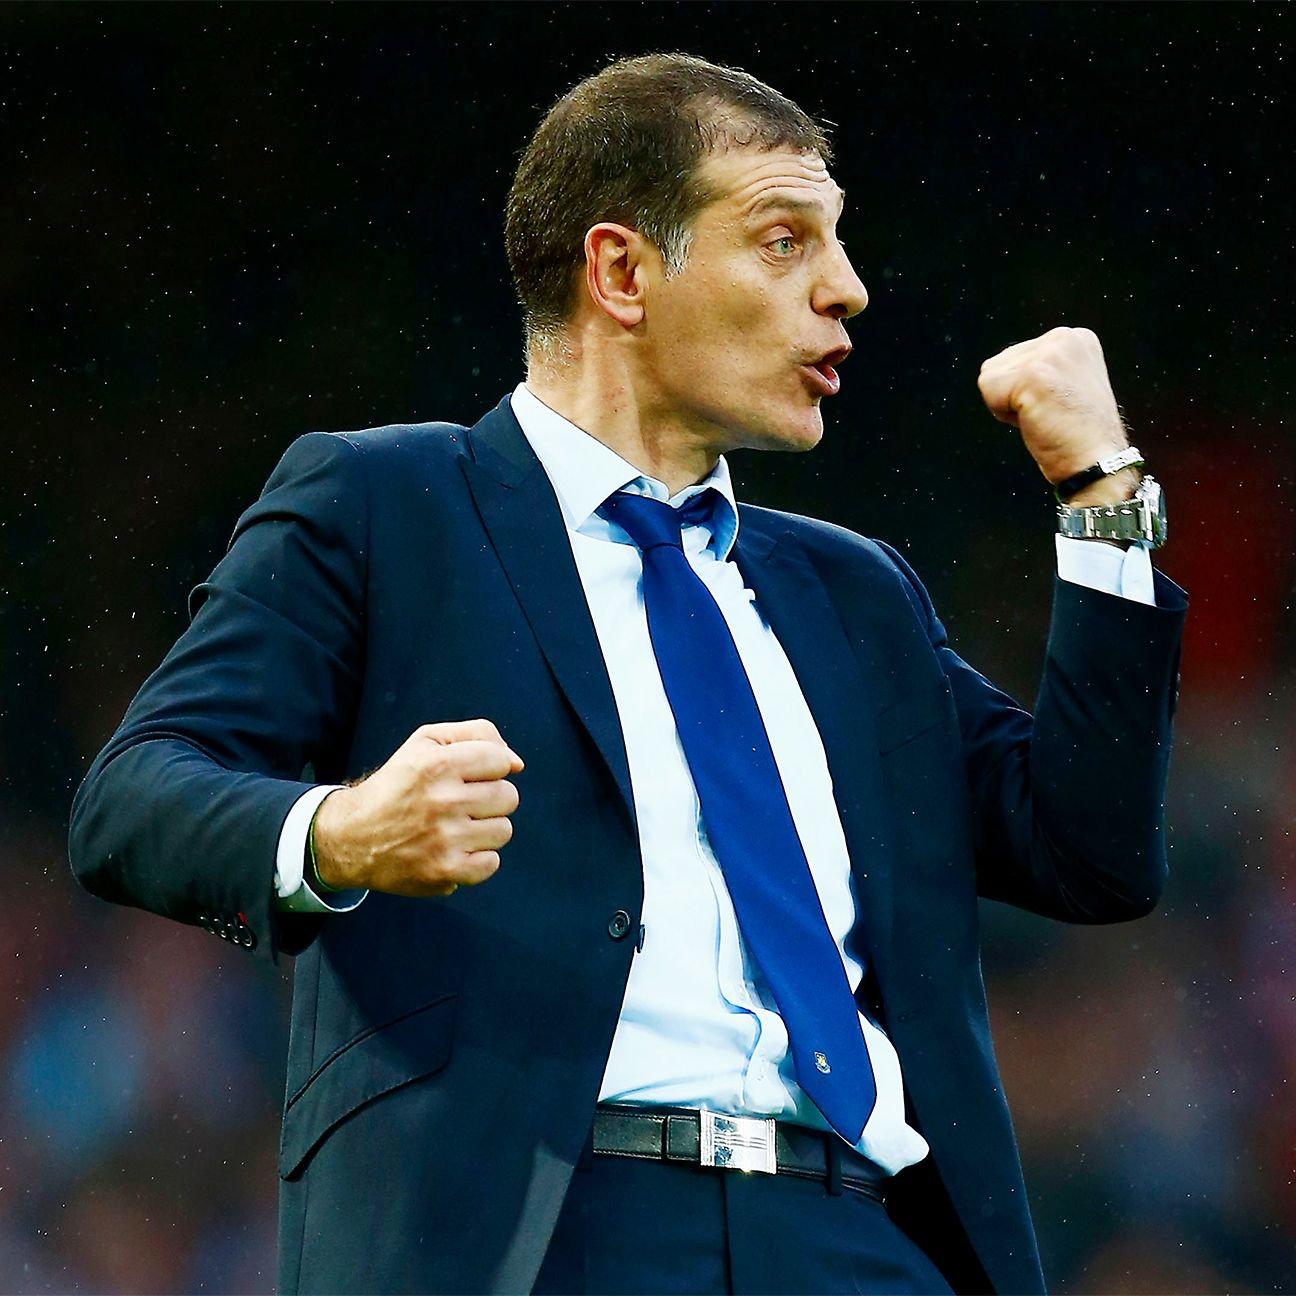 West Ham fans will be hoping for the sight of a Slaven Bilic fistpump during the second week of April.